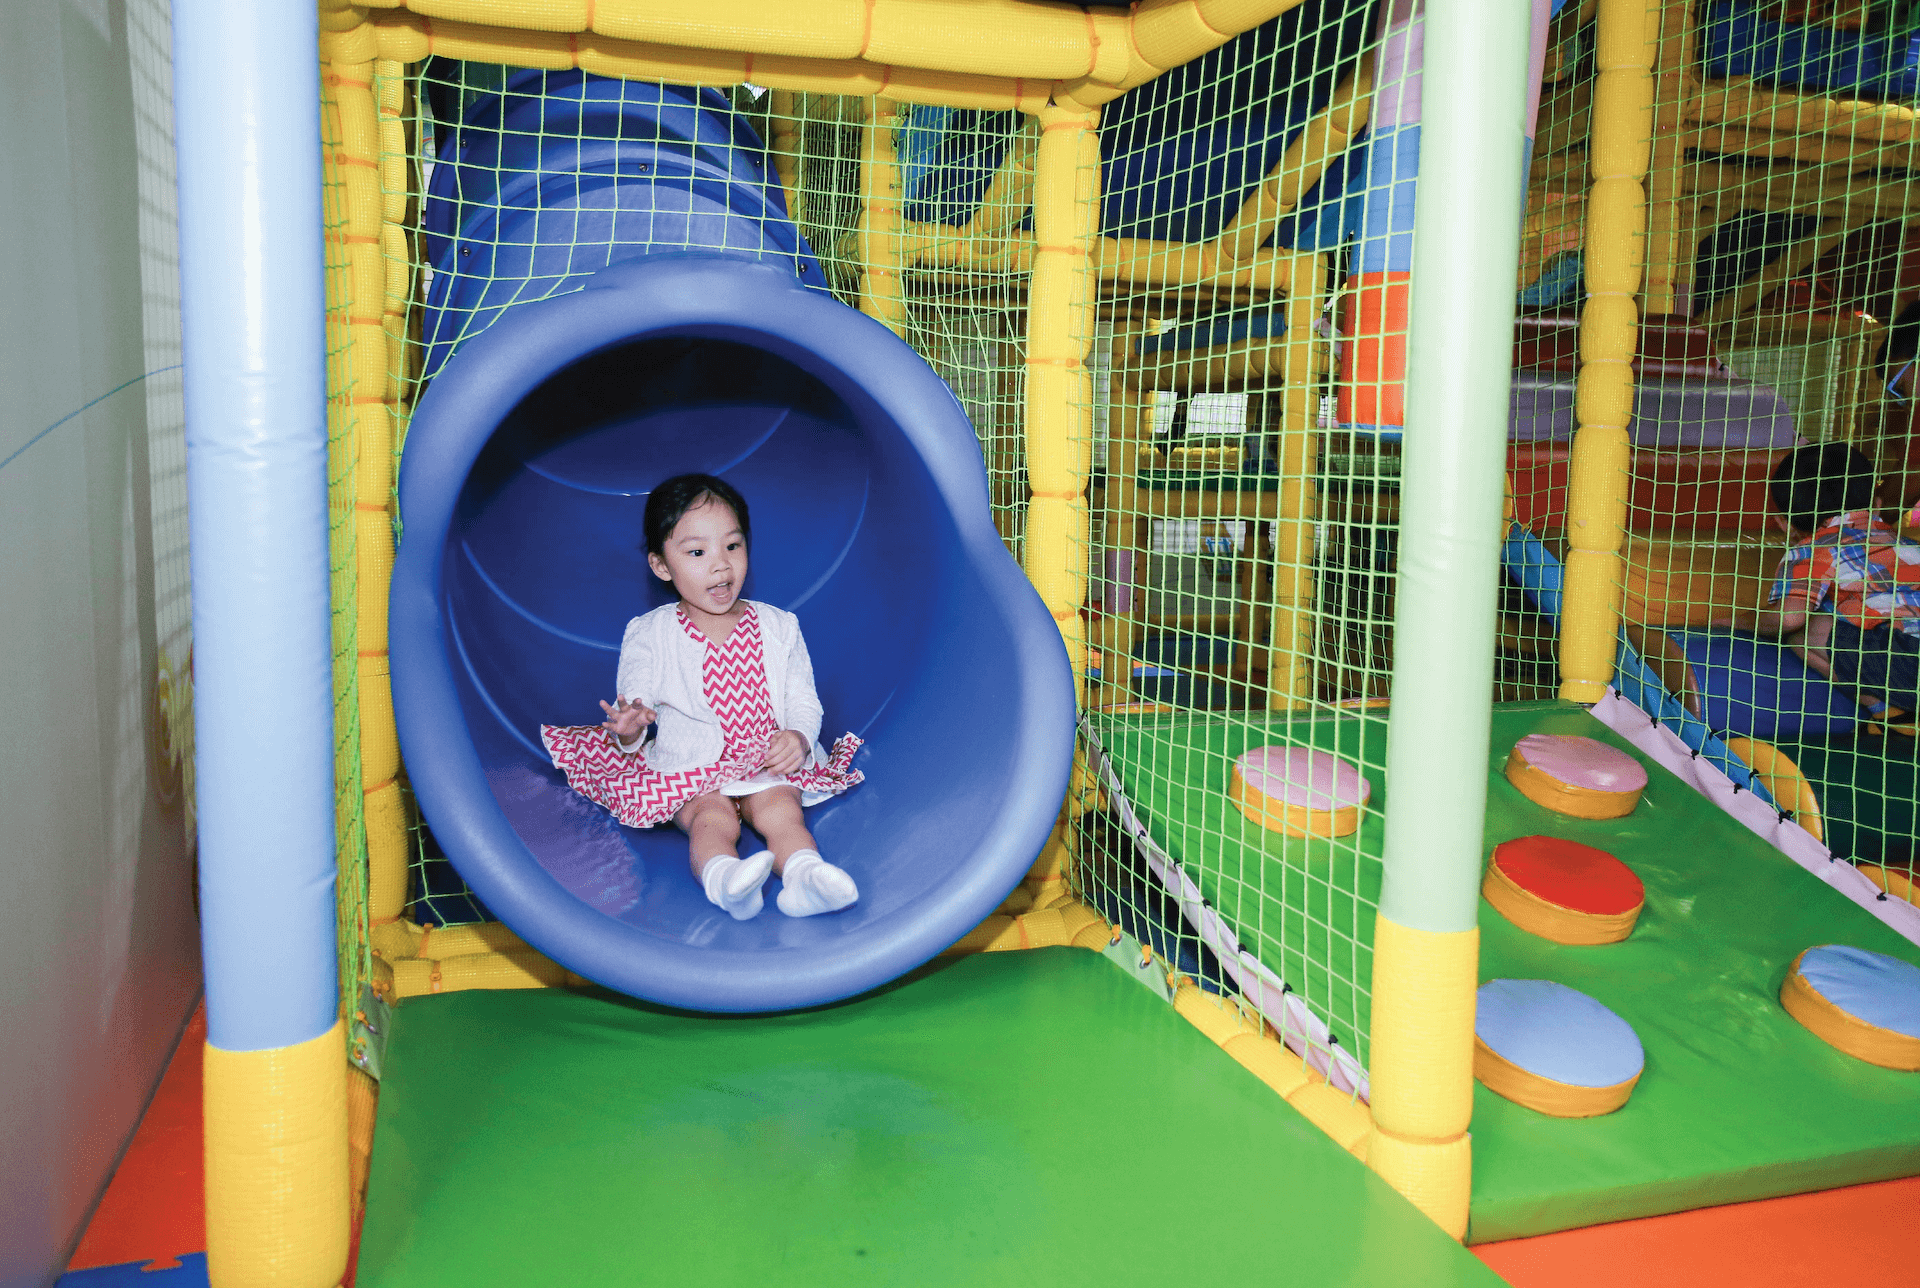 Poby's Jungle Gym Attraction at Pororo Park Singapore